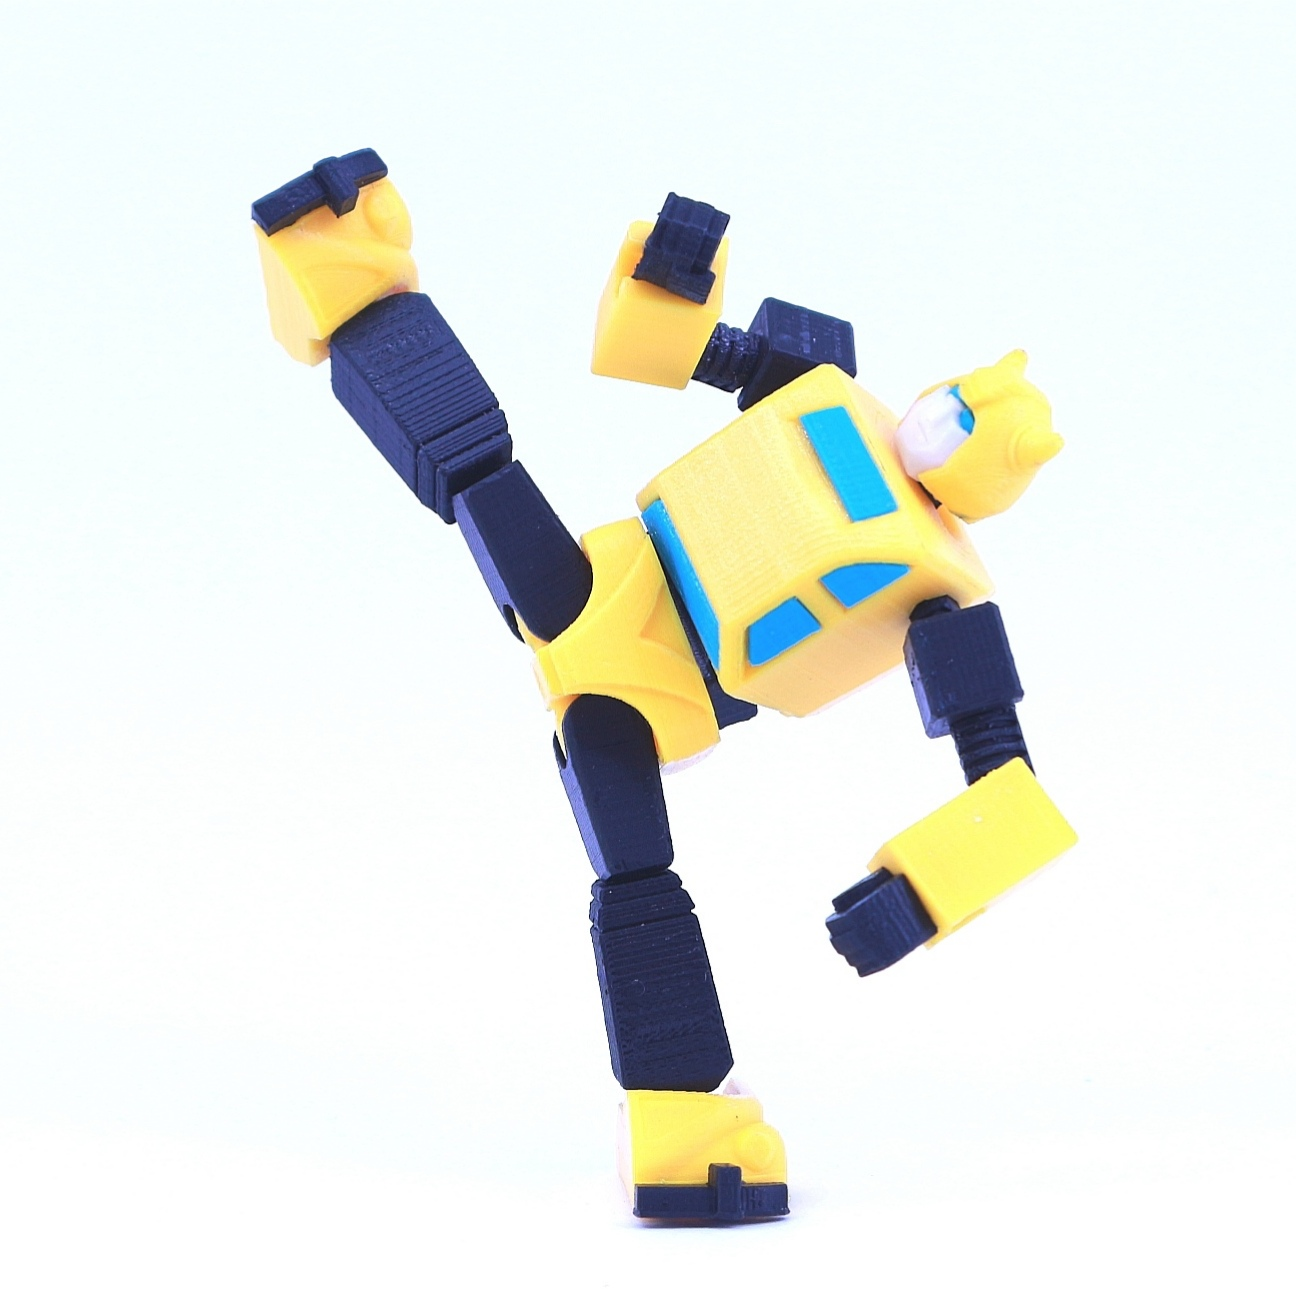 bee10.jpg Download free STL file ARTICULATED G1 TRANSFORMERS BUMBLEBEE - NO SUPPORT • 3D printing model, Toymakr3D